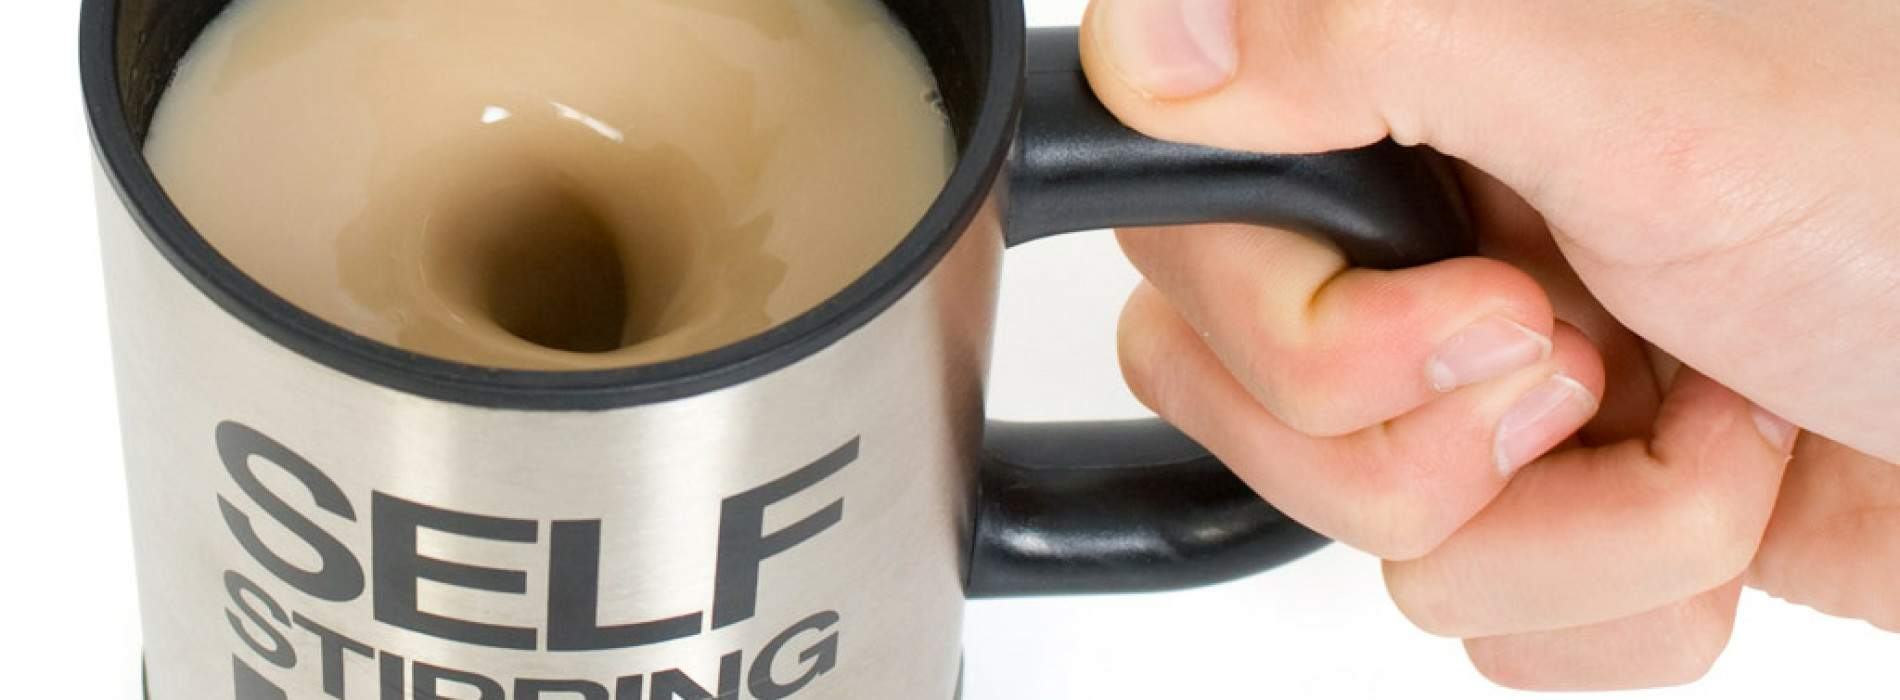 Self Stirring Mug: Taza que se agita sola